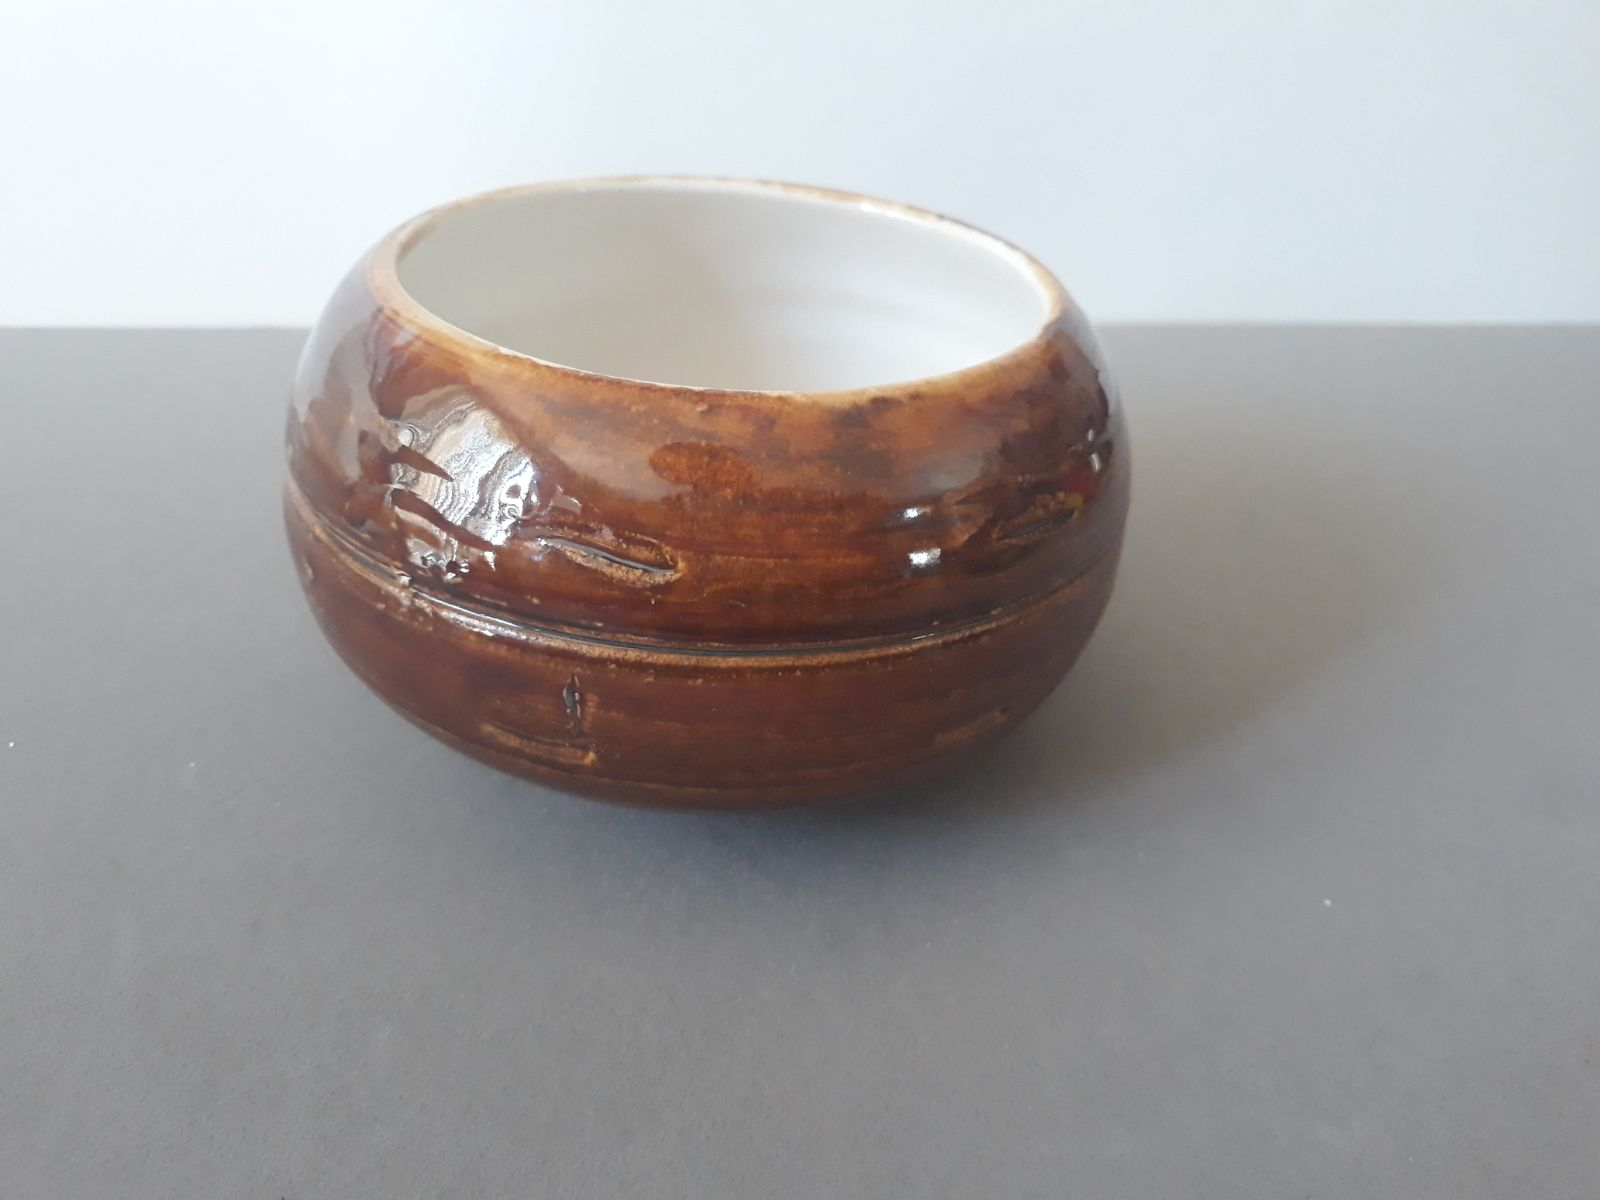 Brown and white bowl